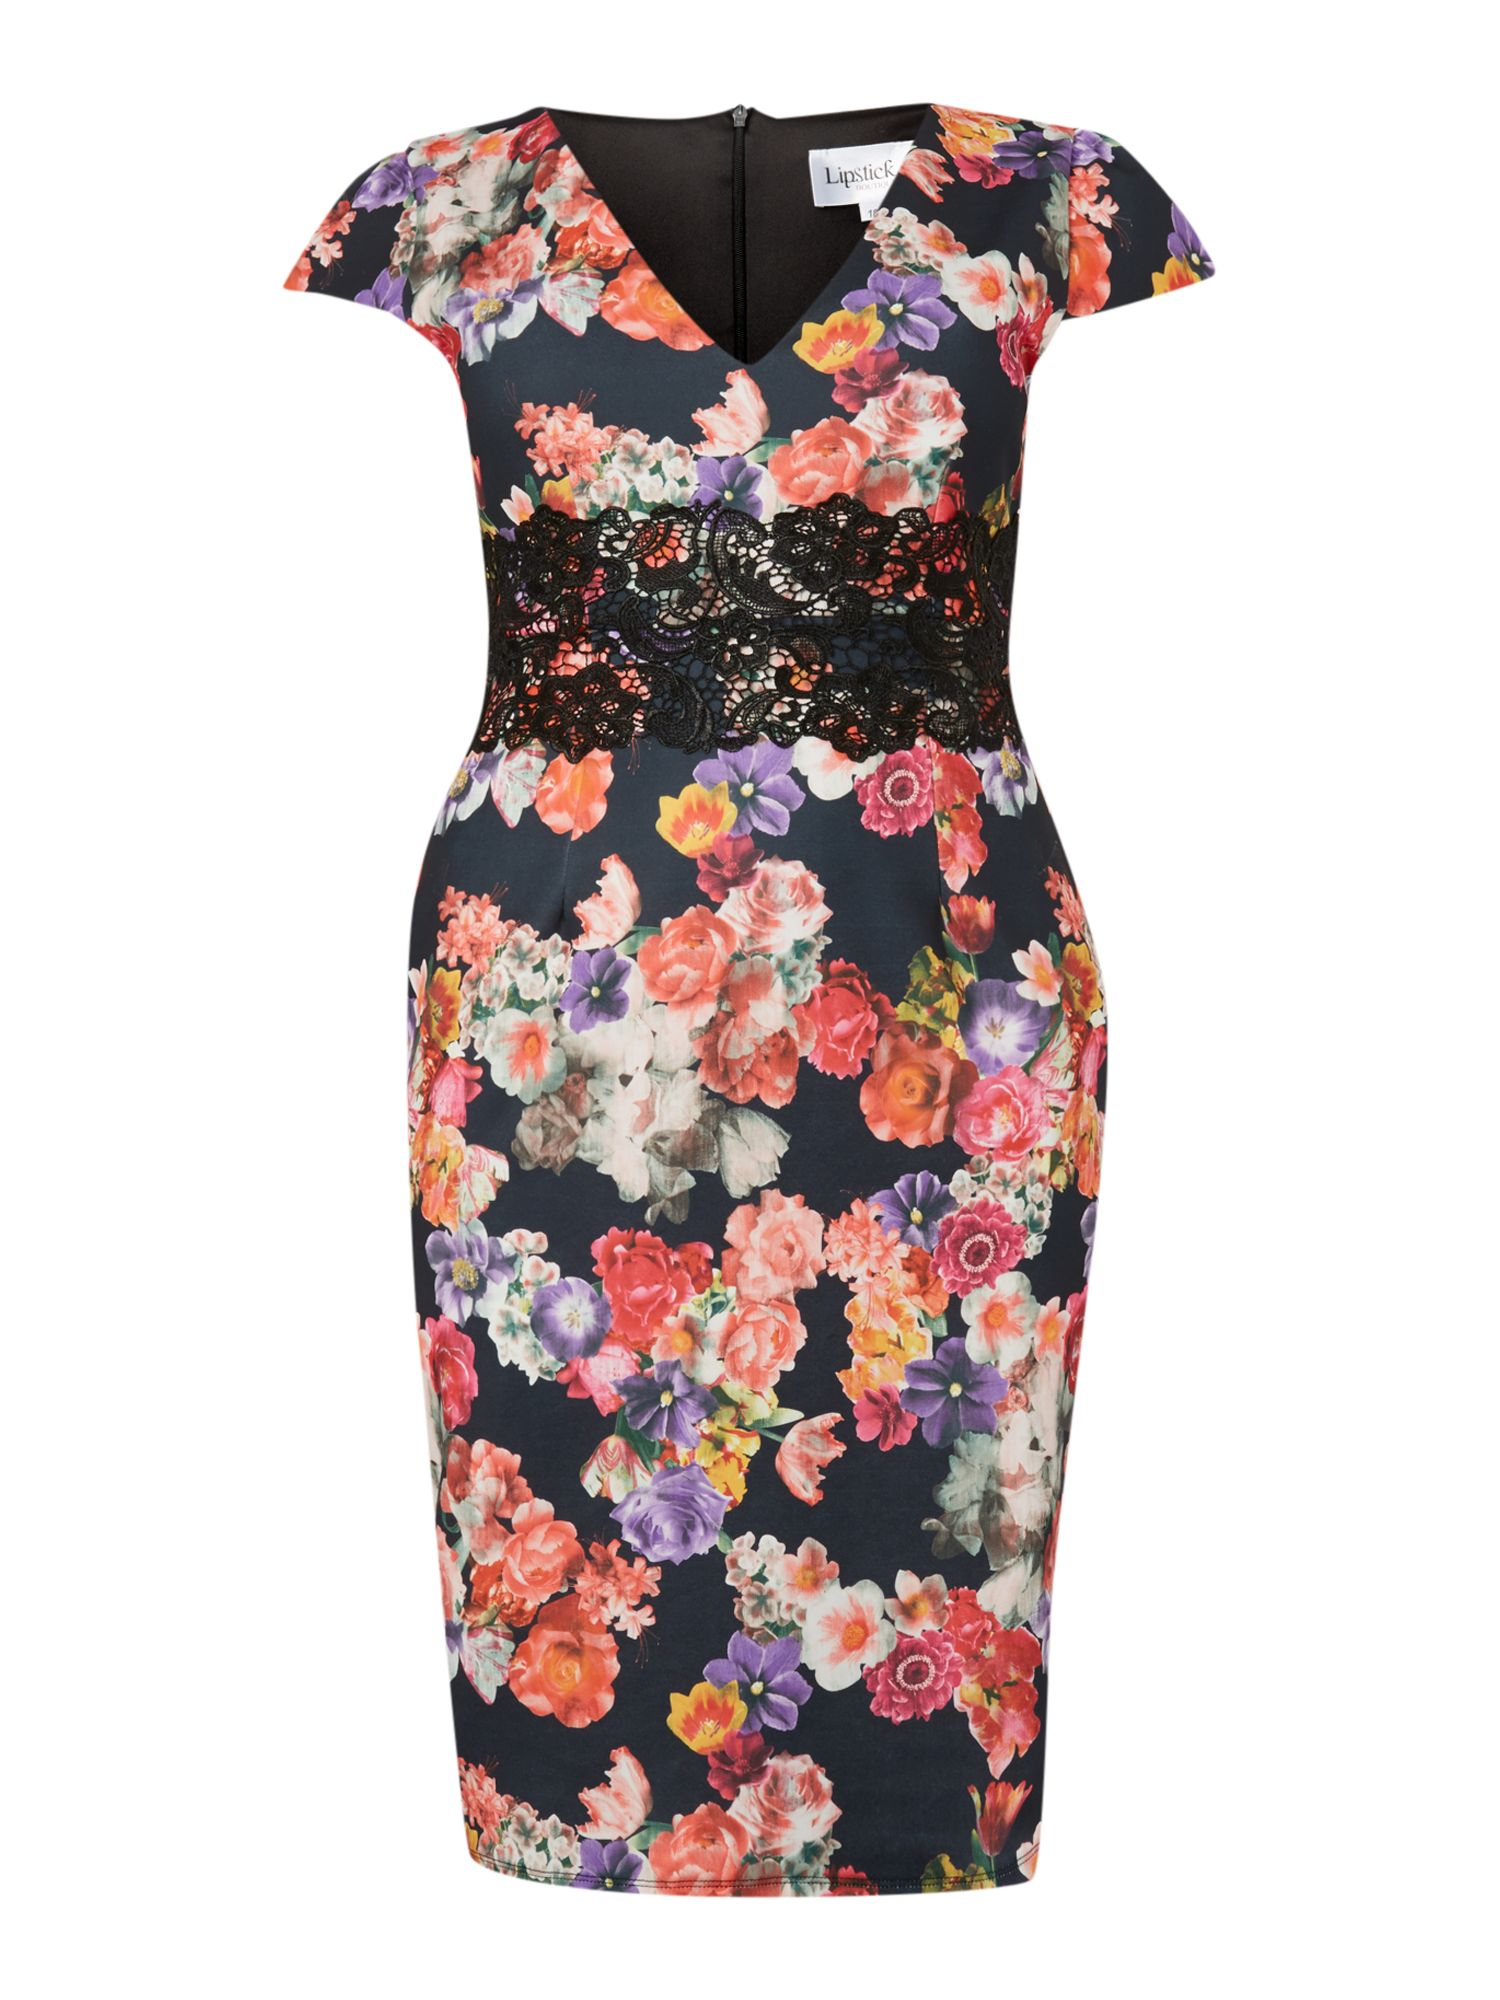 Cap sleeved floral print dress